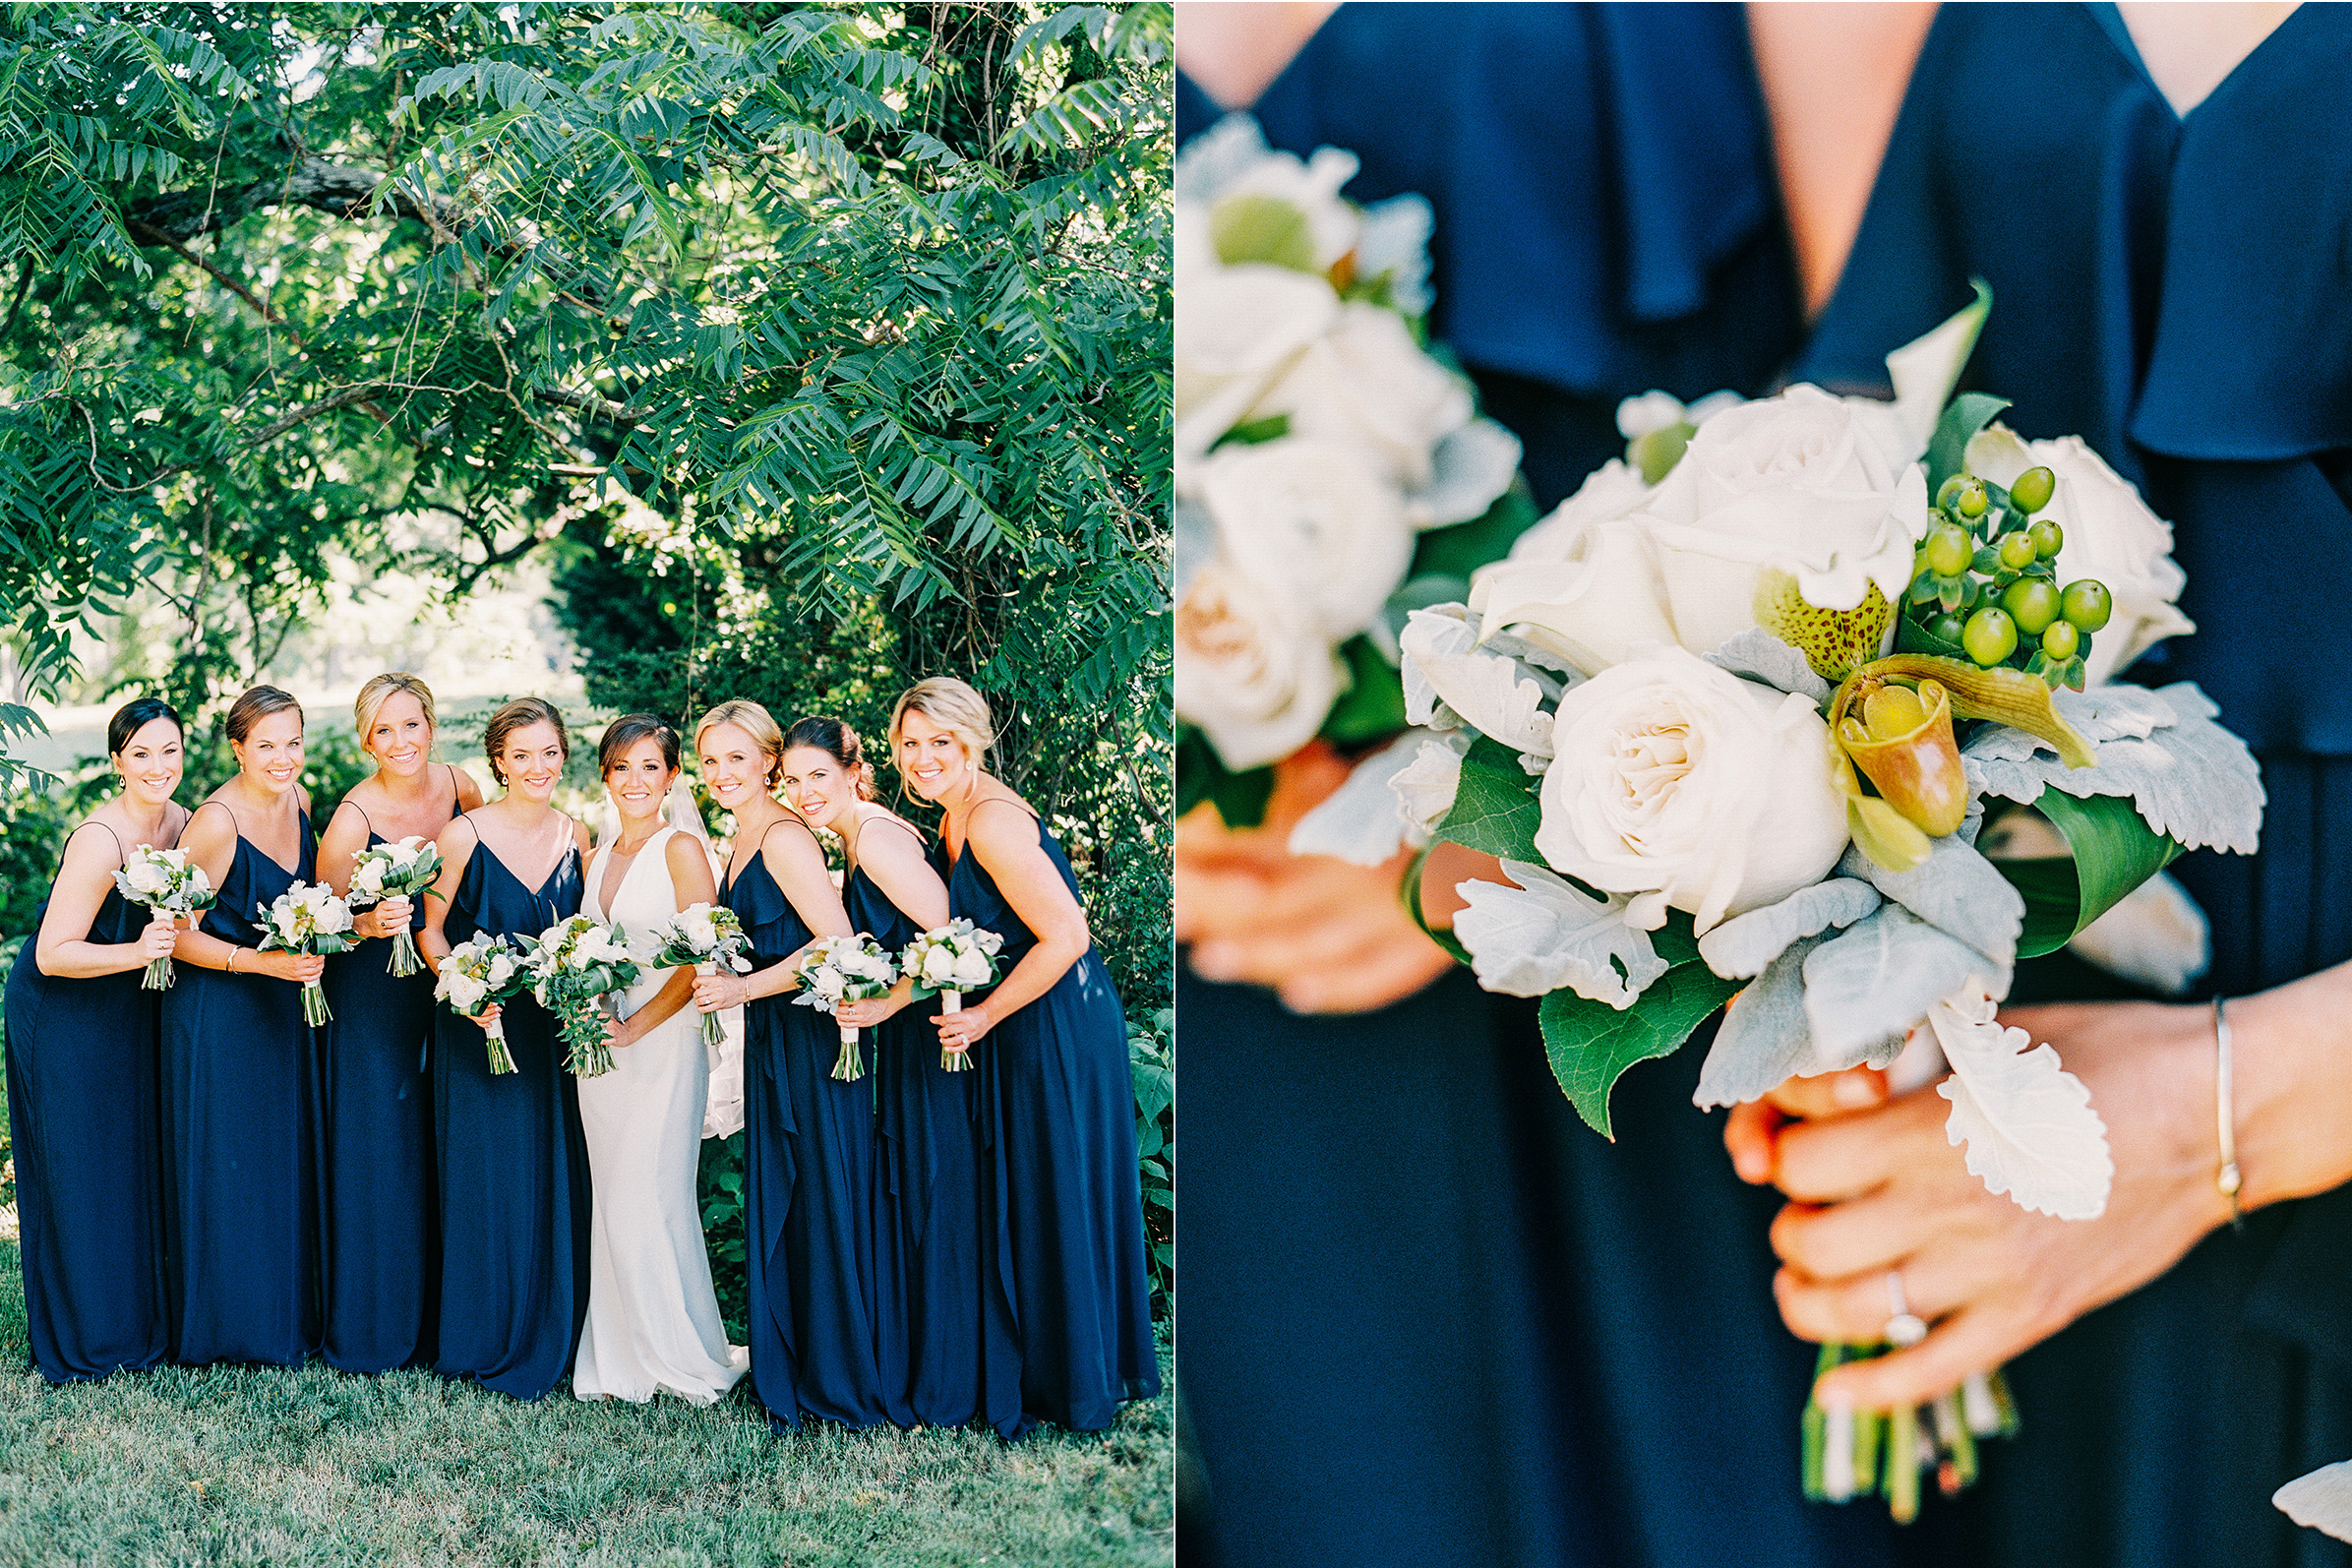 katie stoops photography-solomans island wedding21.jpg